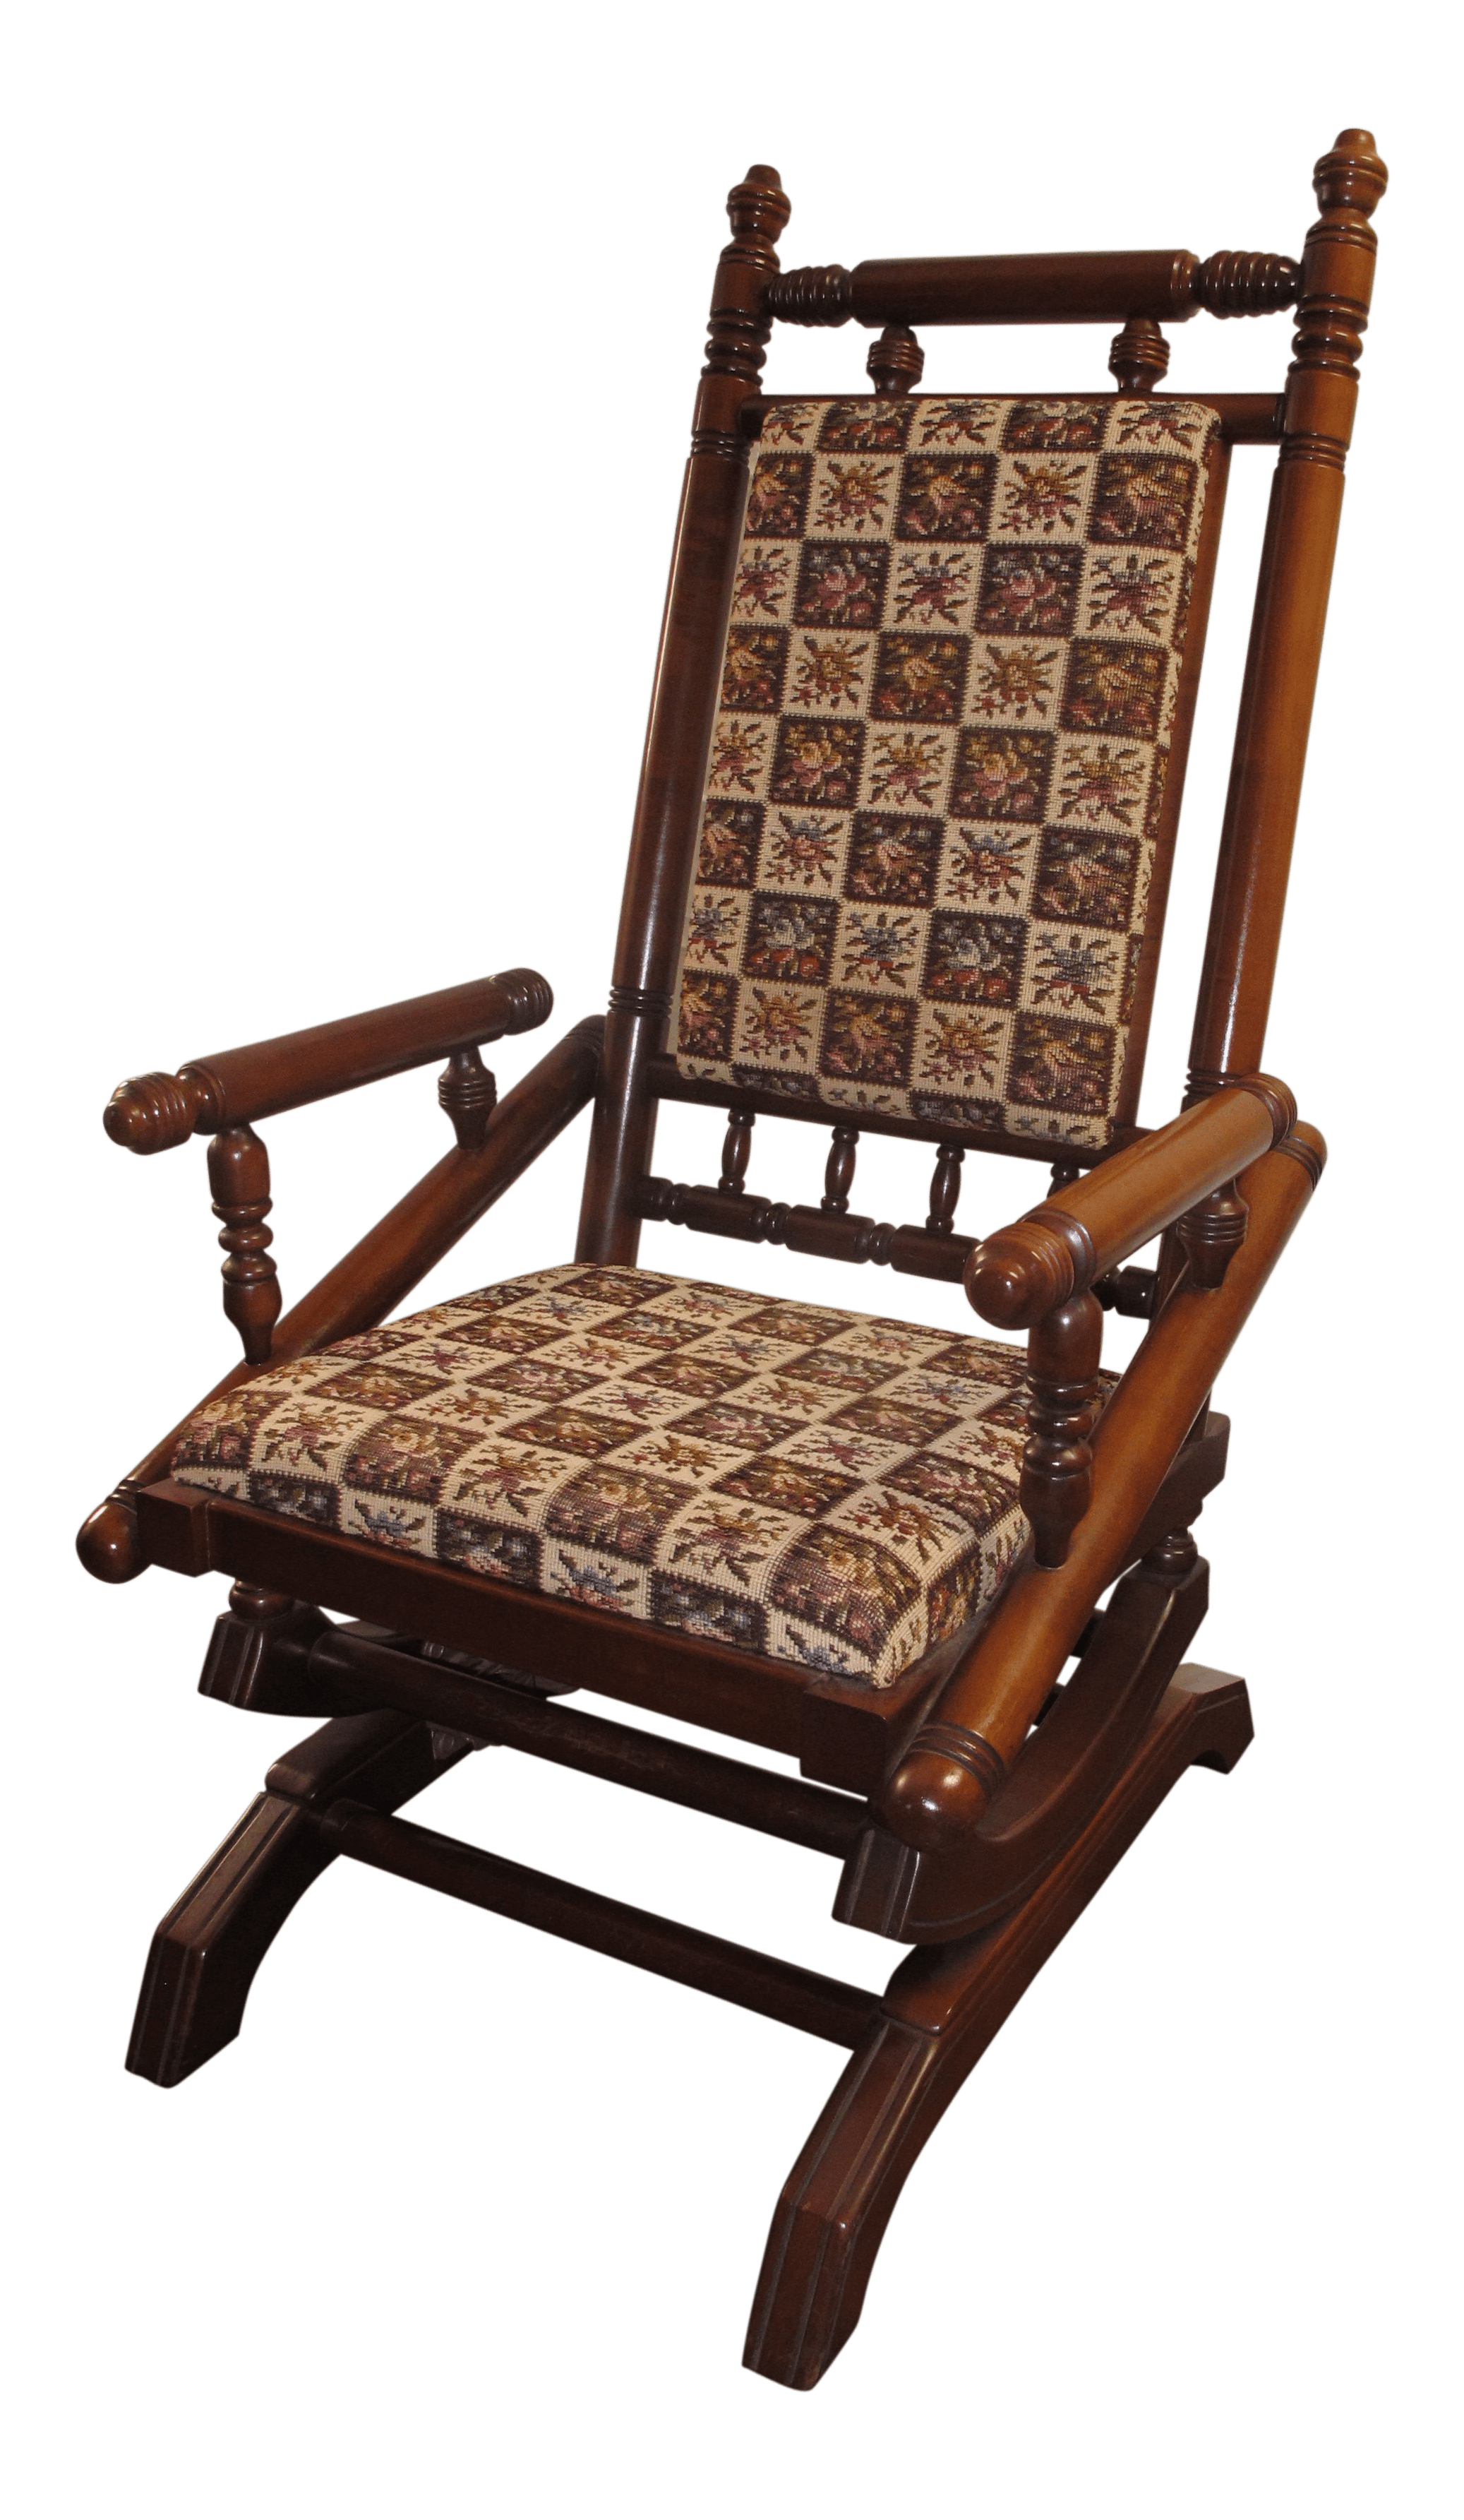 Best Place To Buy Rocking Chairs Antique Eastlake Victorian Turned Walnut Platform Rocking Chair